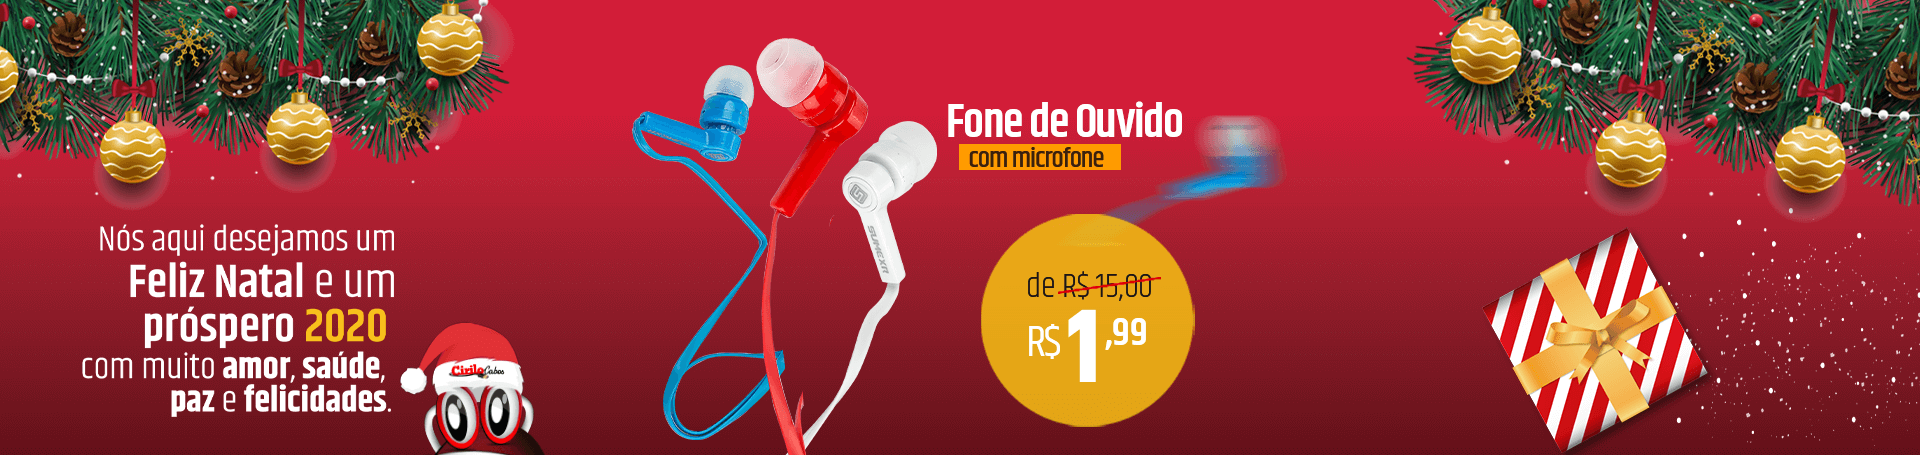 Precço de Black Friday - 04